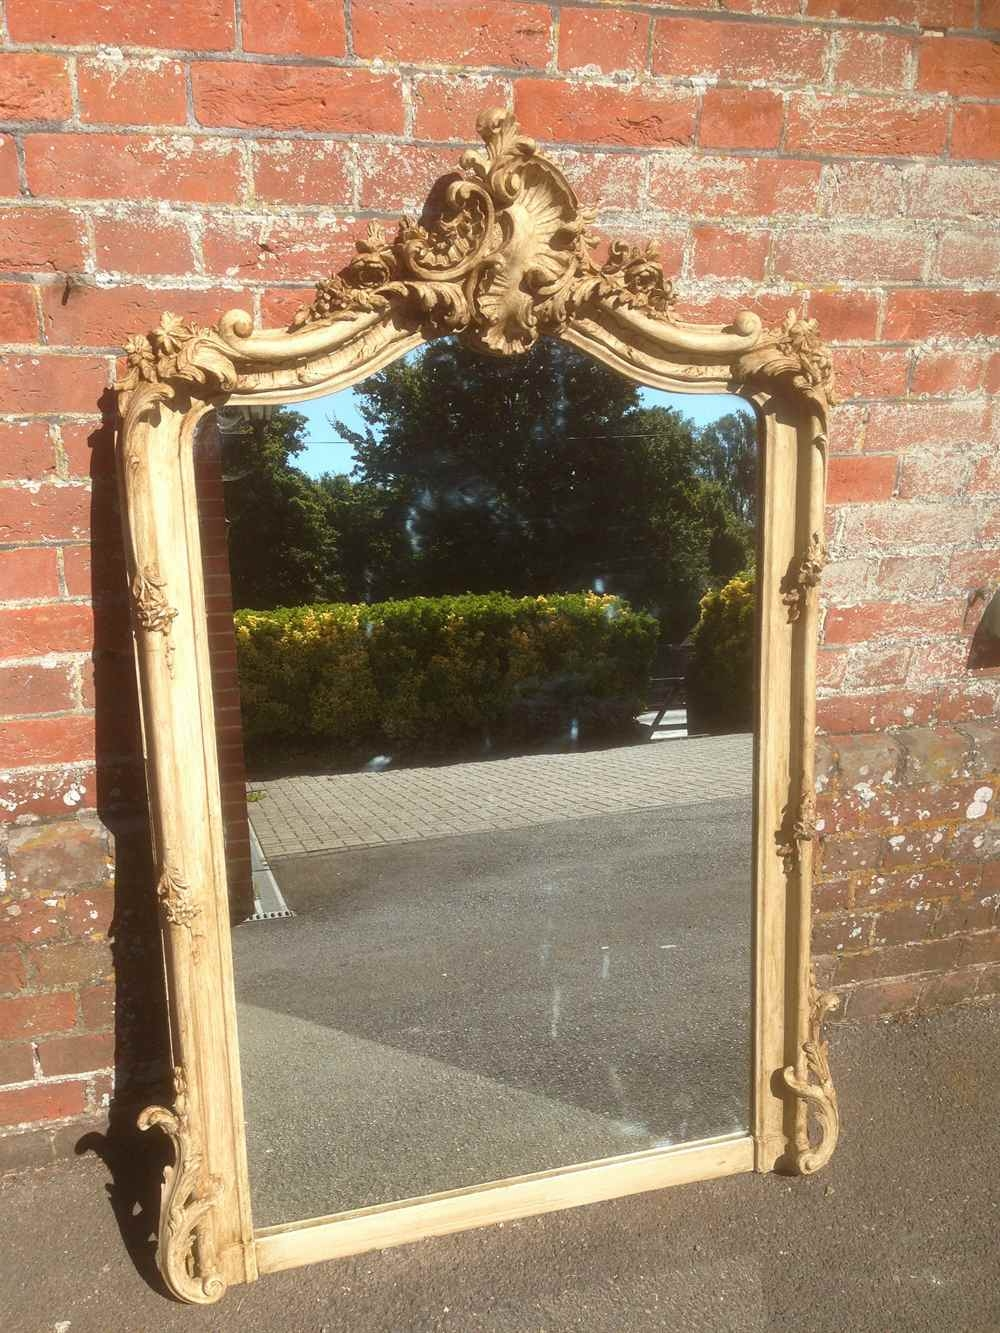 A Wonderful Antique 19th Century Large French Ornate Painted Regarding Large French Mirrors (View 13 of 15)